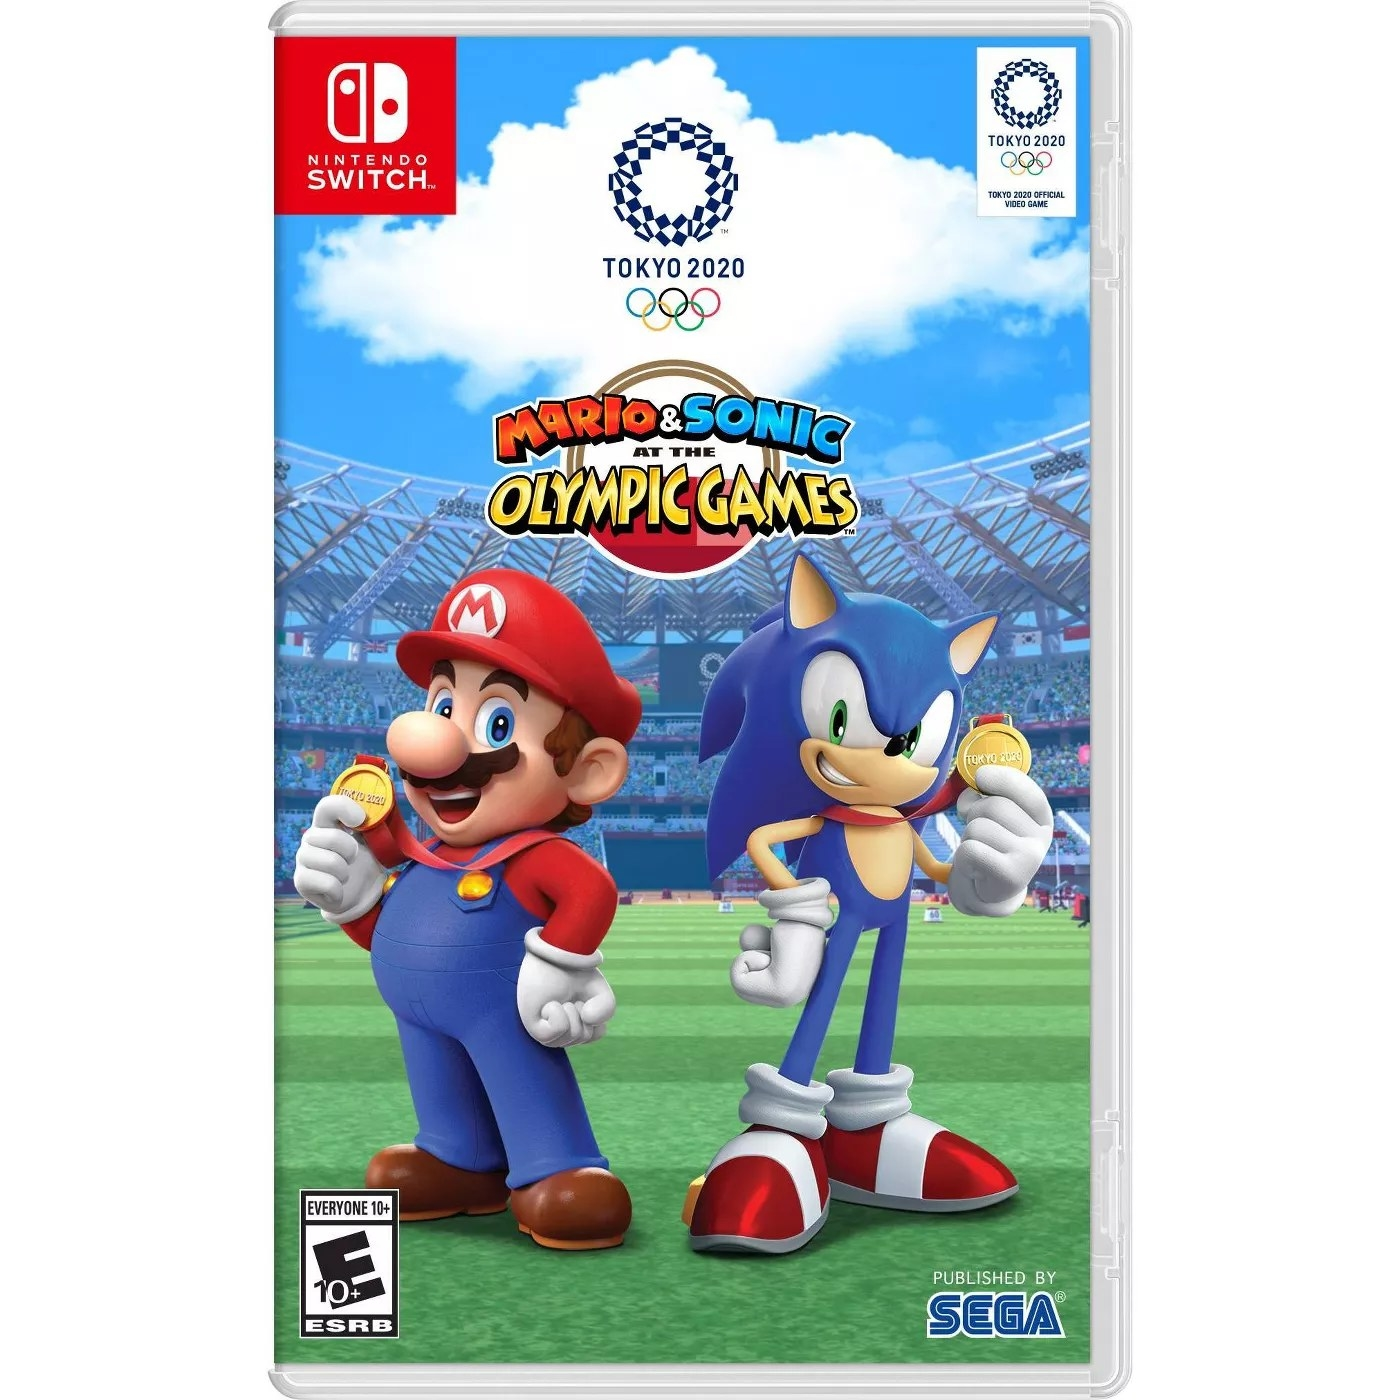 The Mario & Sonic at the Olympic Games Tokyo 2020 game